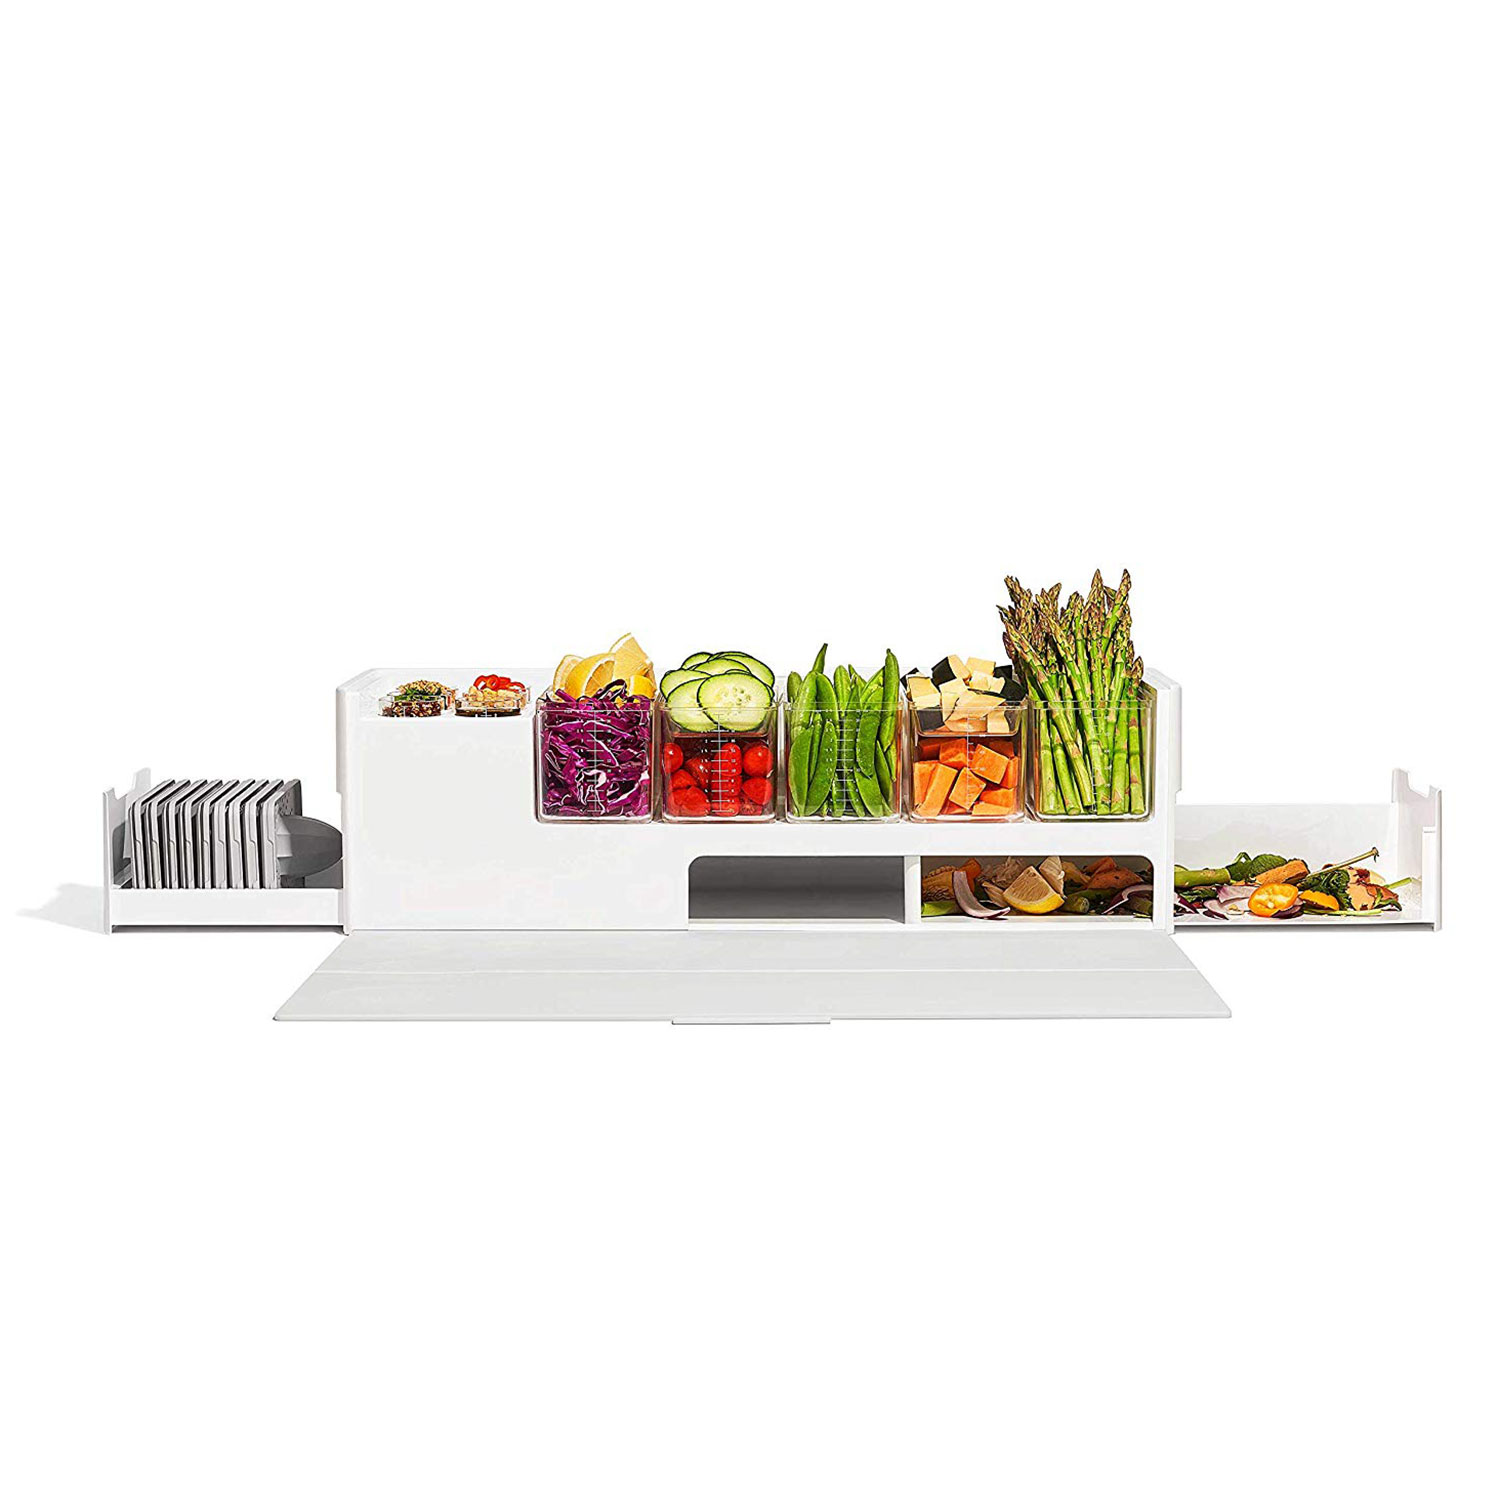 Prepdeck Meal Prep Station Cutting Board with Prep Containers